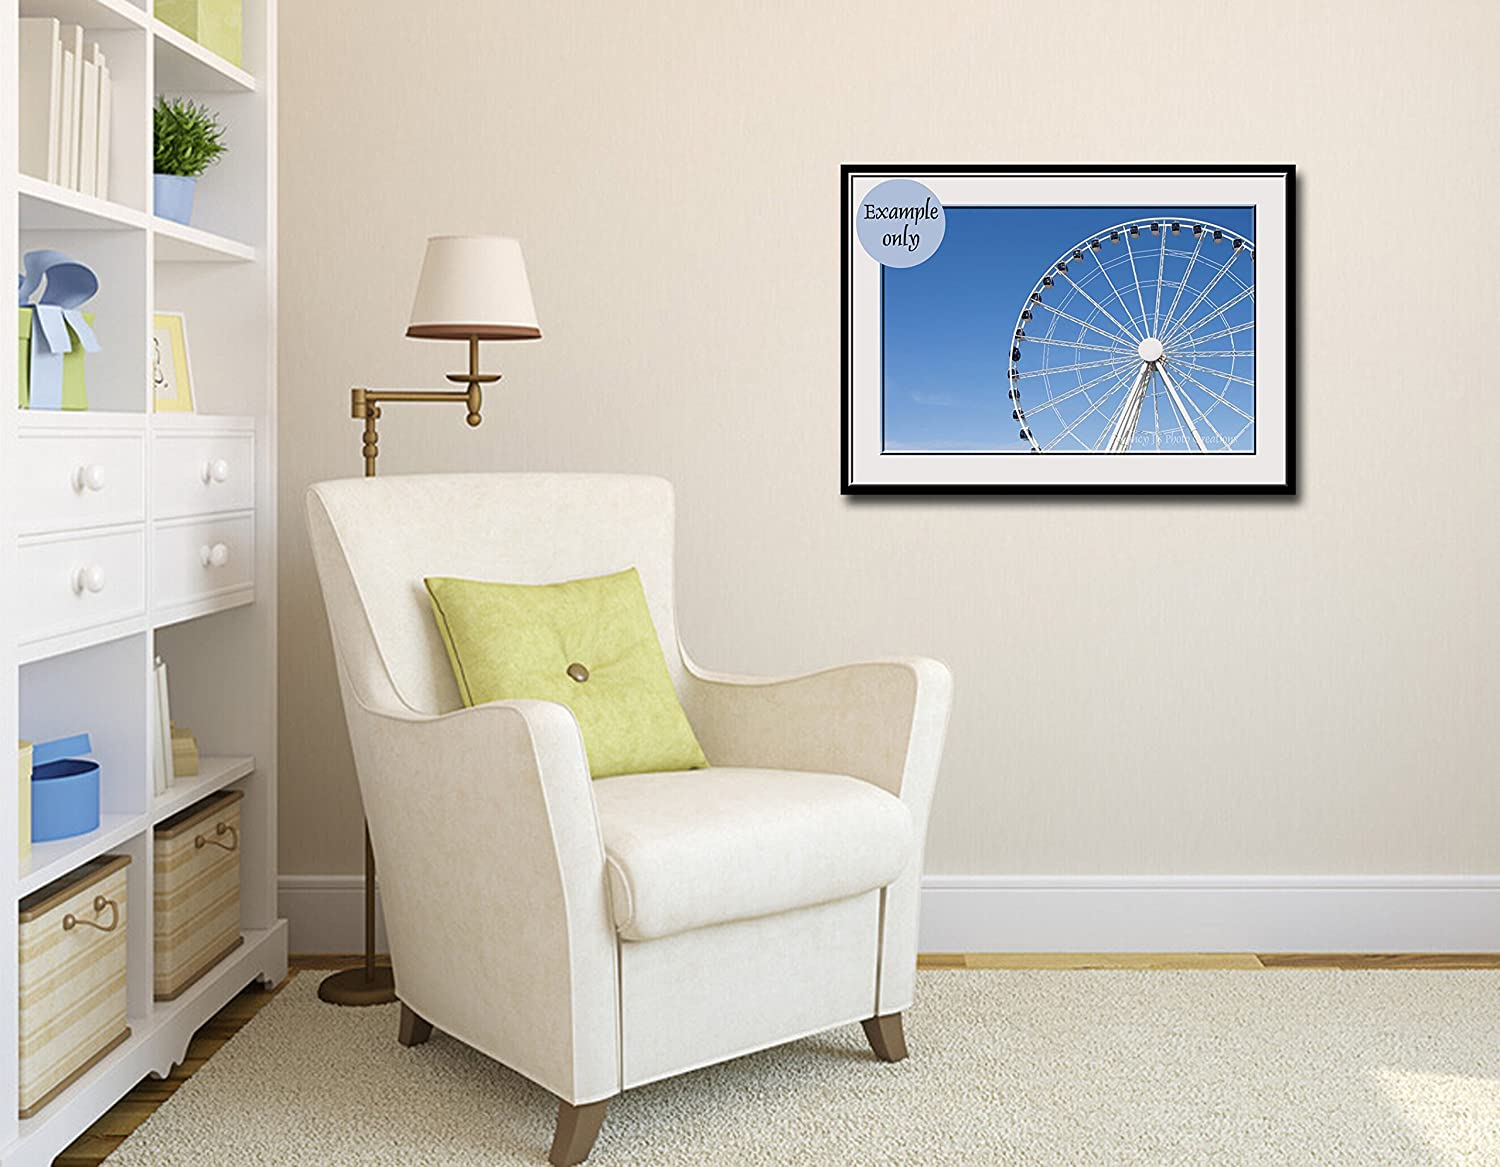 Exceptional Amazon.com: Blue White Ferris Wheel Unframed Photographic Print Seattle  Travel Photography Minimalist Home Decor 5x7 8x10 8x12 11x14 12x18 16x20  16x24 ...